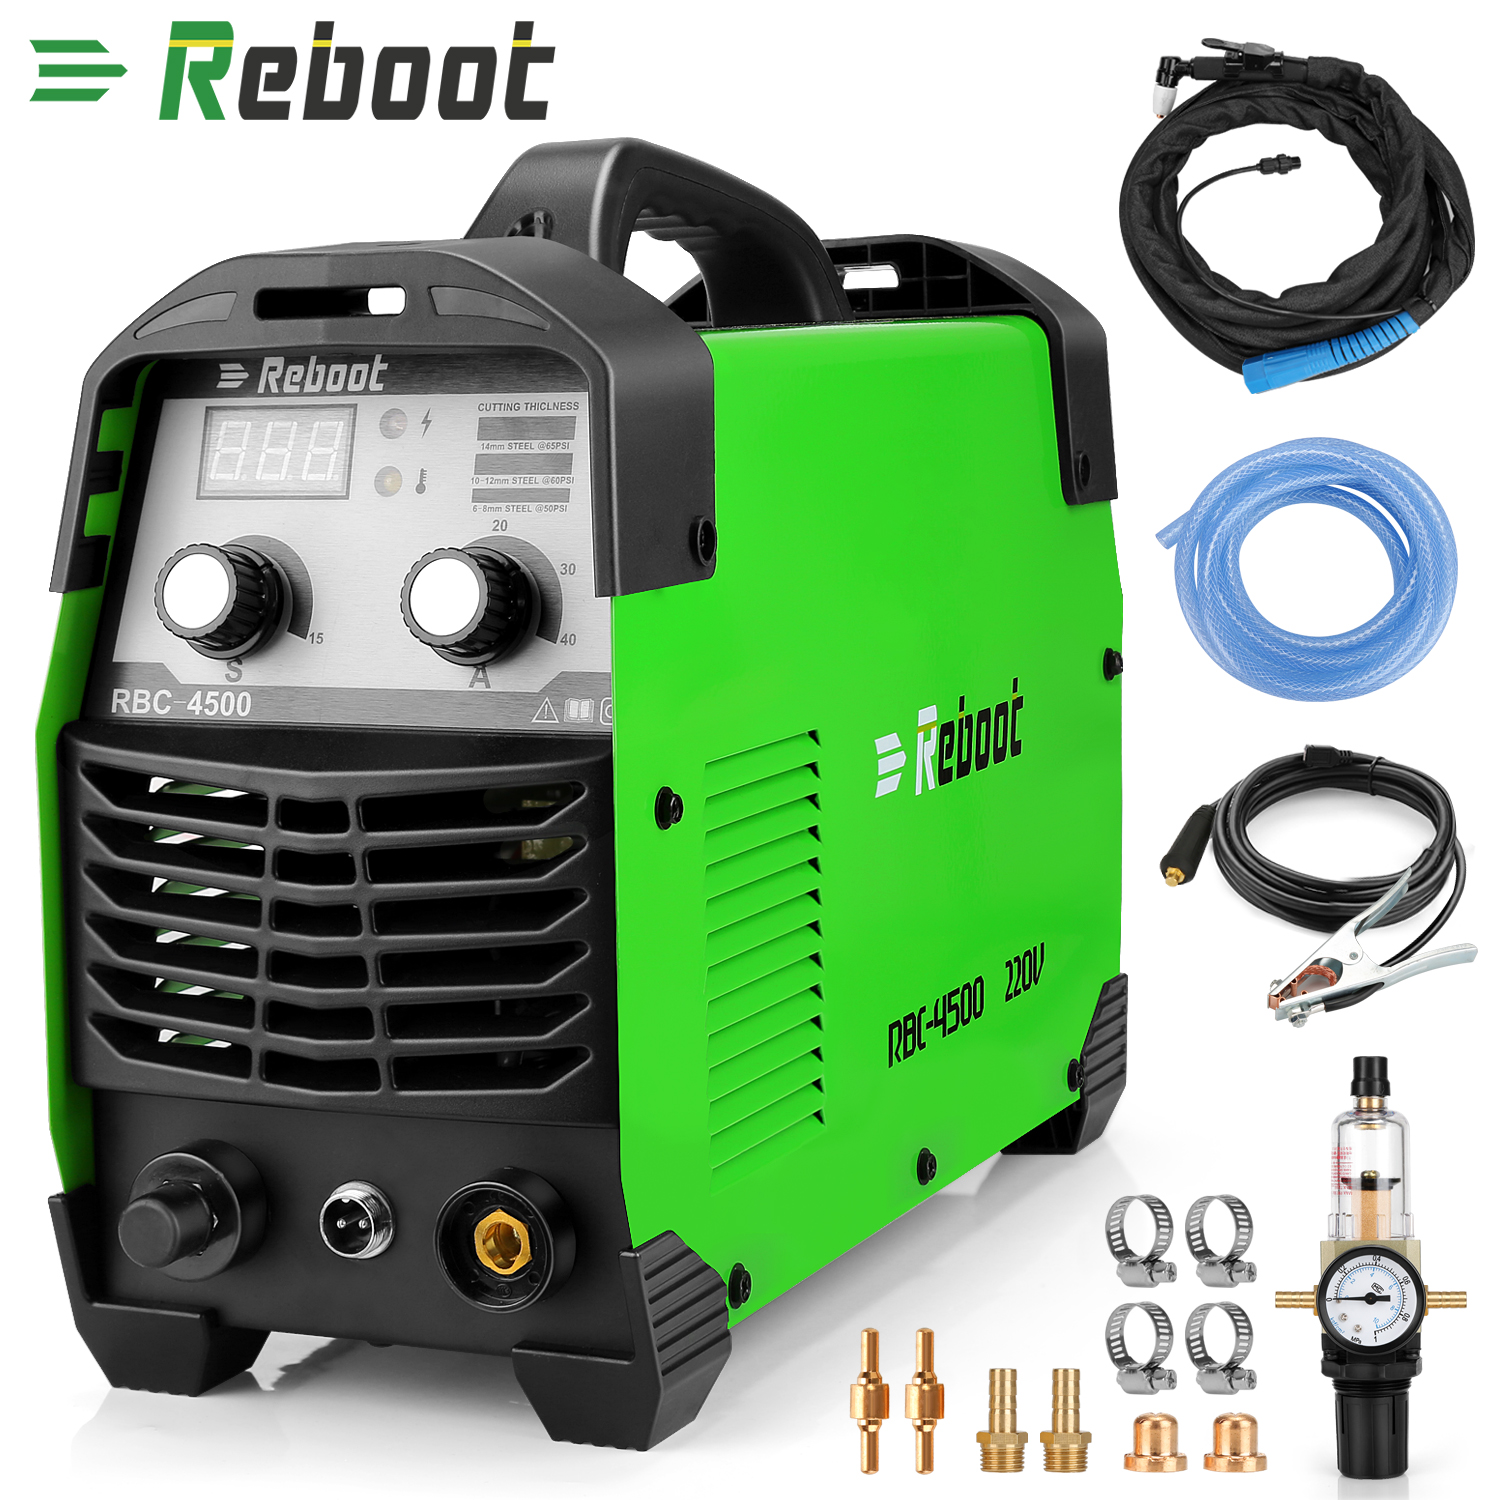 "Reboot Plasma Cutter 45Amps AC220V Voltage Compact Metal Cutter AC 1/2"" Clean Cut Inverter Cutting Machine"